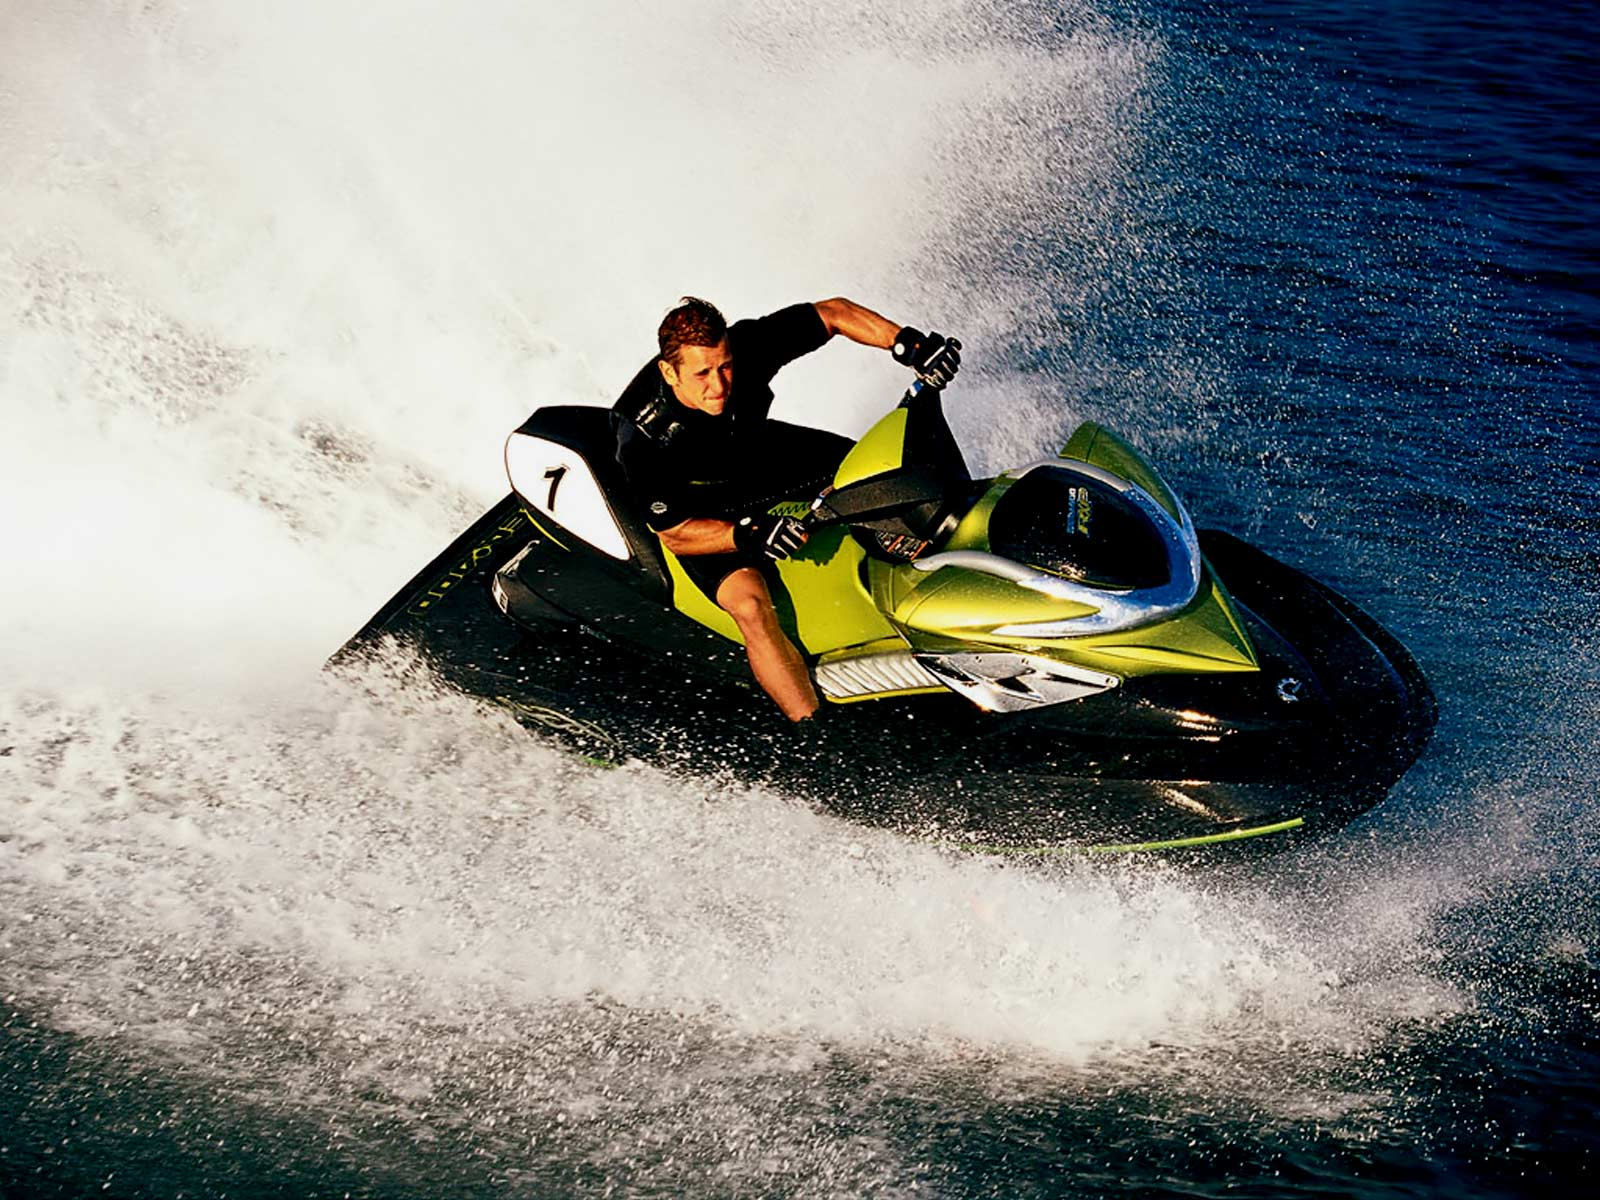 Sea Doo Bombardier Wallpaper At Wallpaperist - 1600x1200 - jpeg